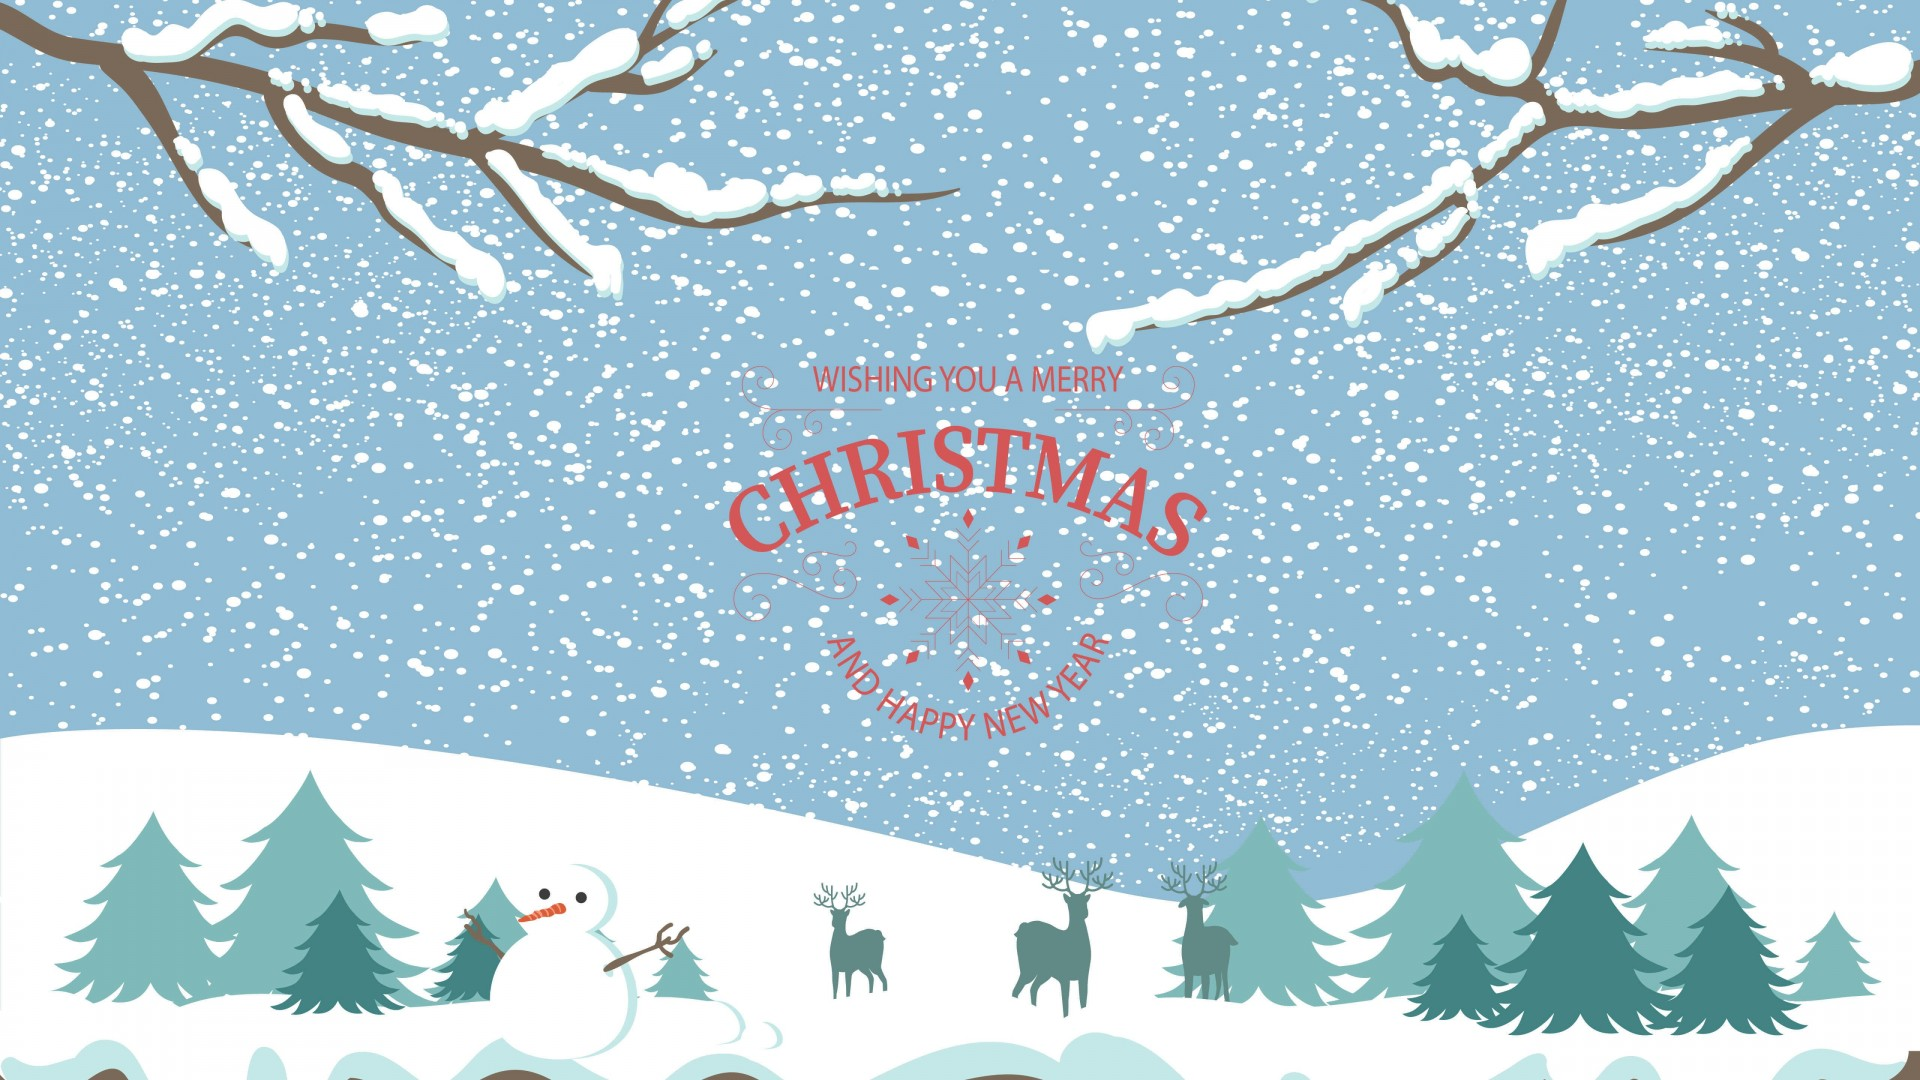 merry christmas illustration wallpaper background